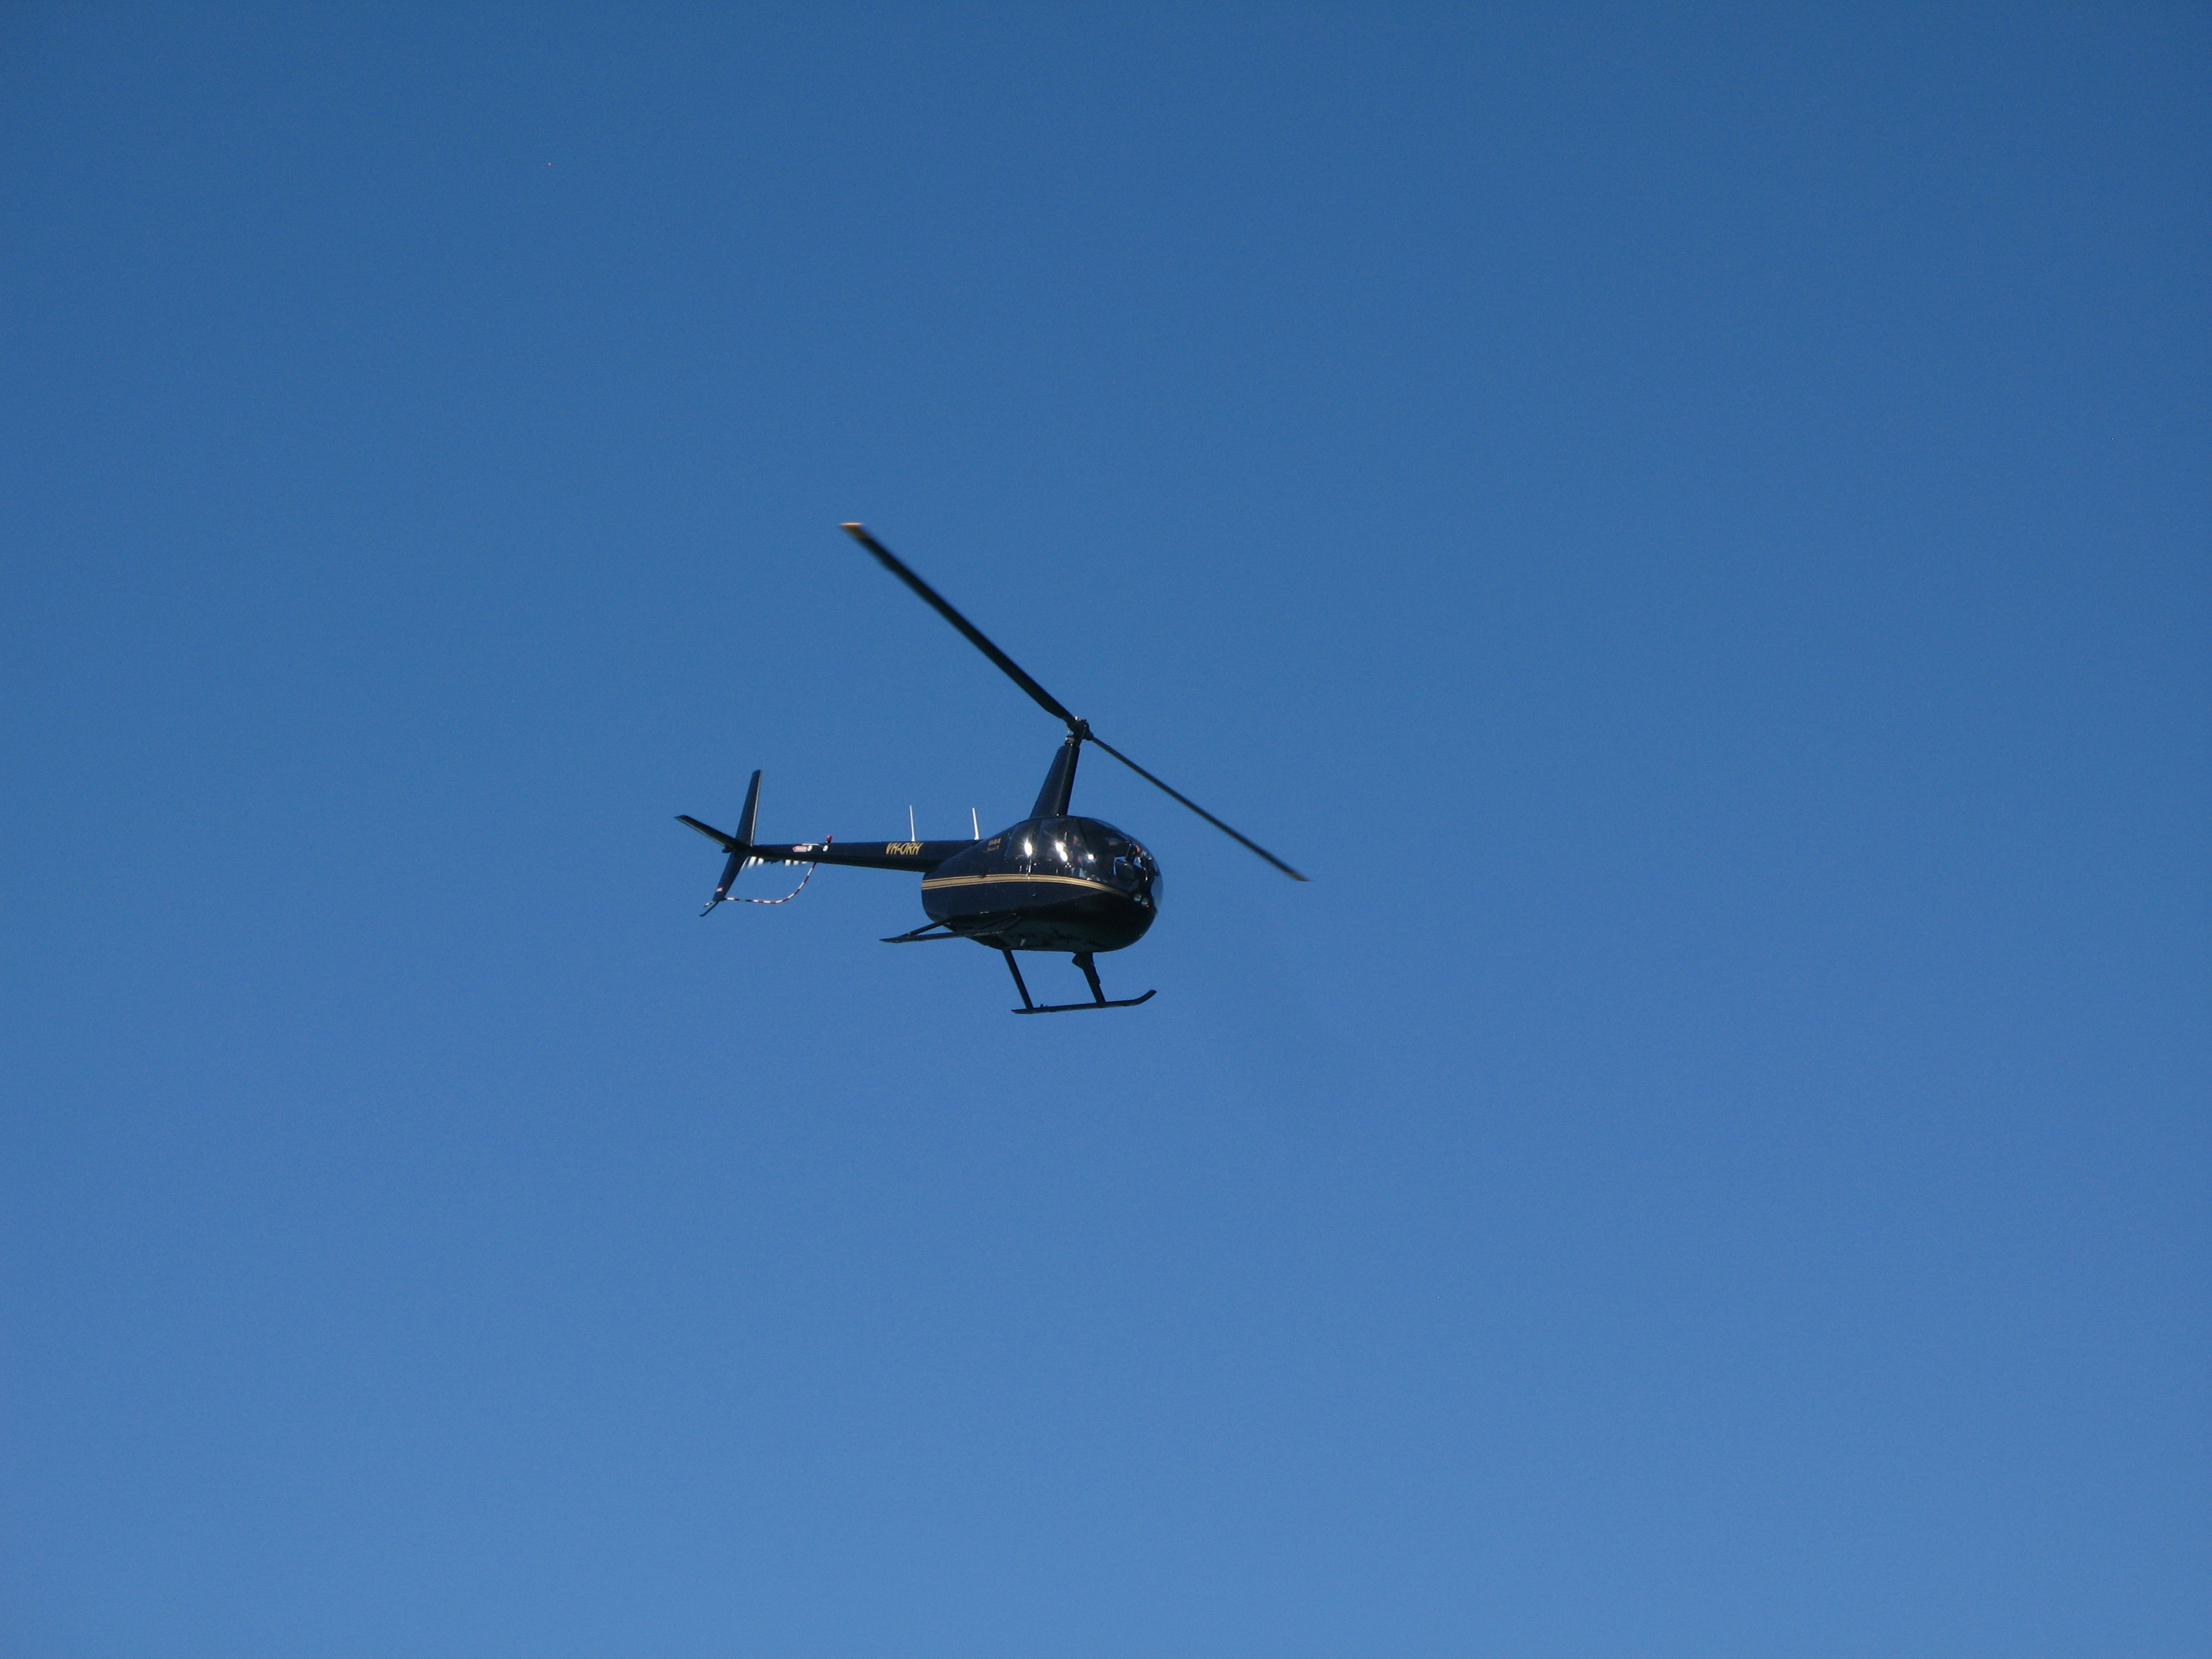 Black Helicopter Flying up in the Blue Gray Sky, Emphasizing Copy Space.